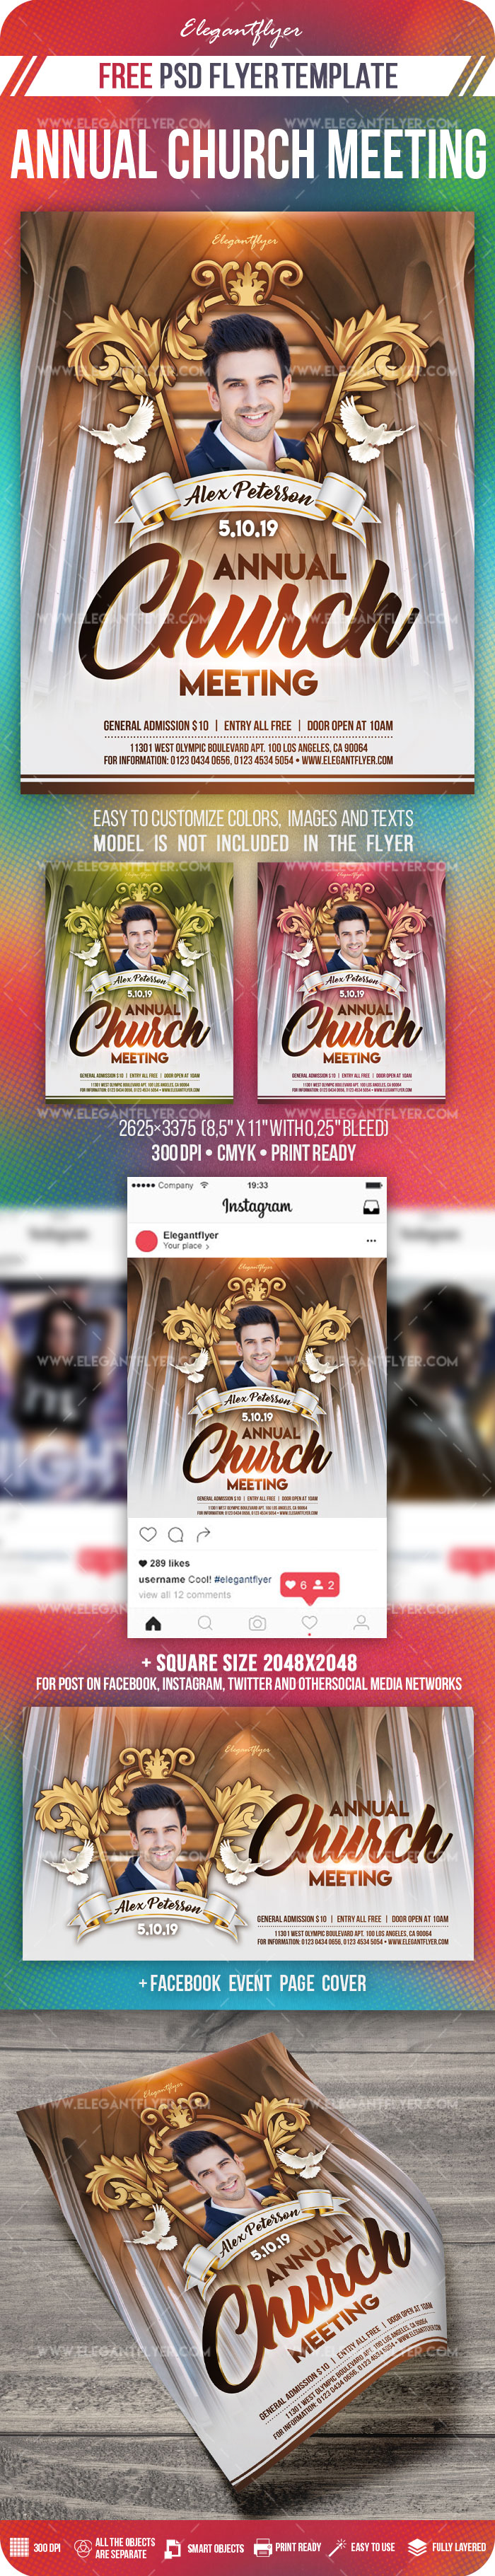 Annual Church Meeting – Free PSD Flyer Template + Facebook Cover + Instagram Post